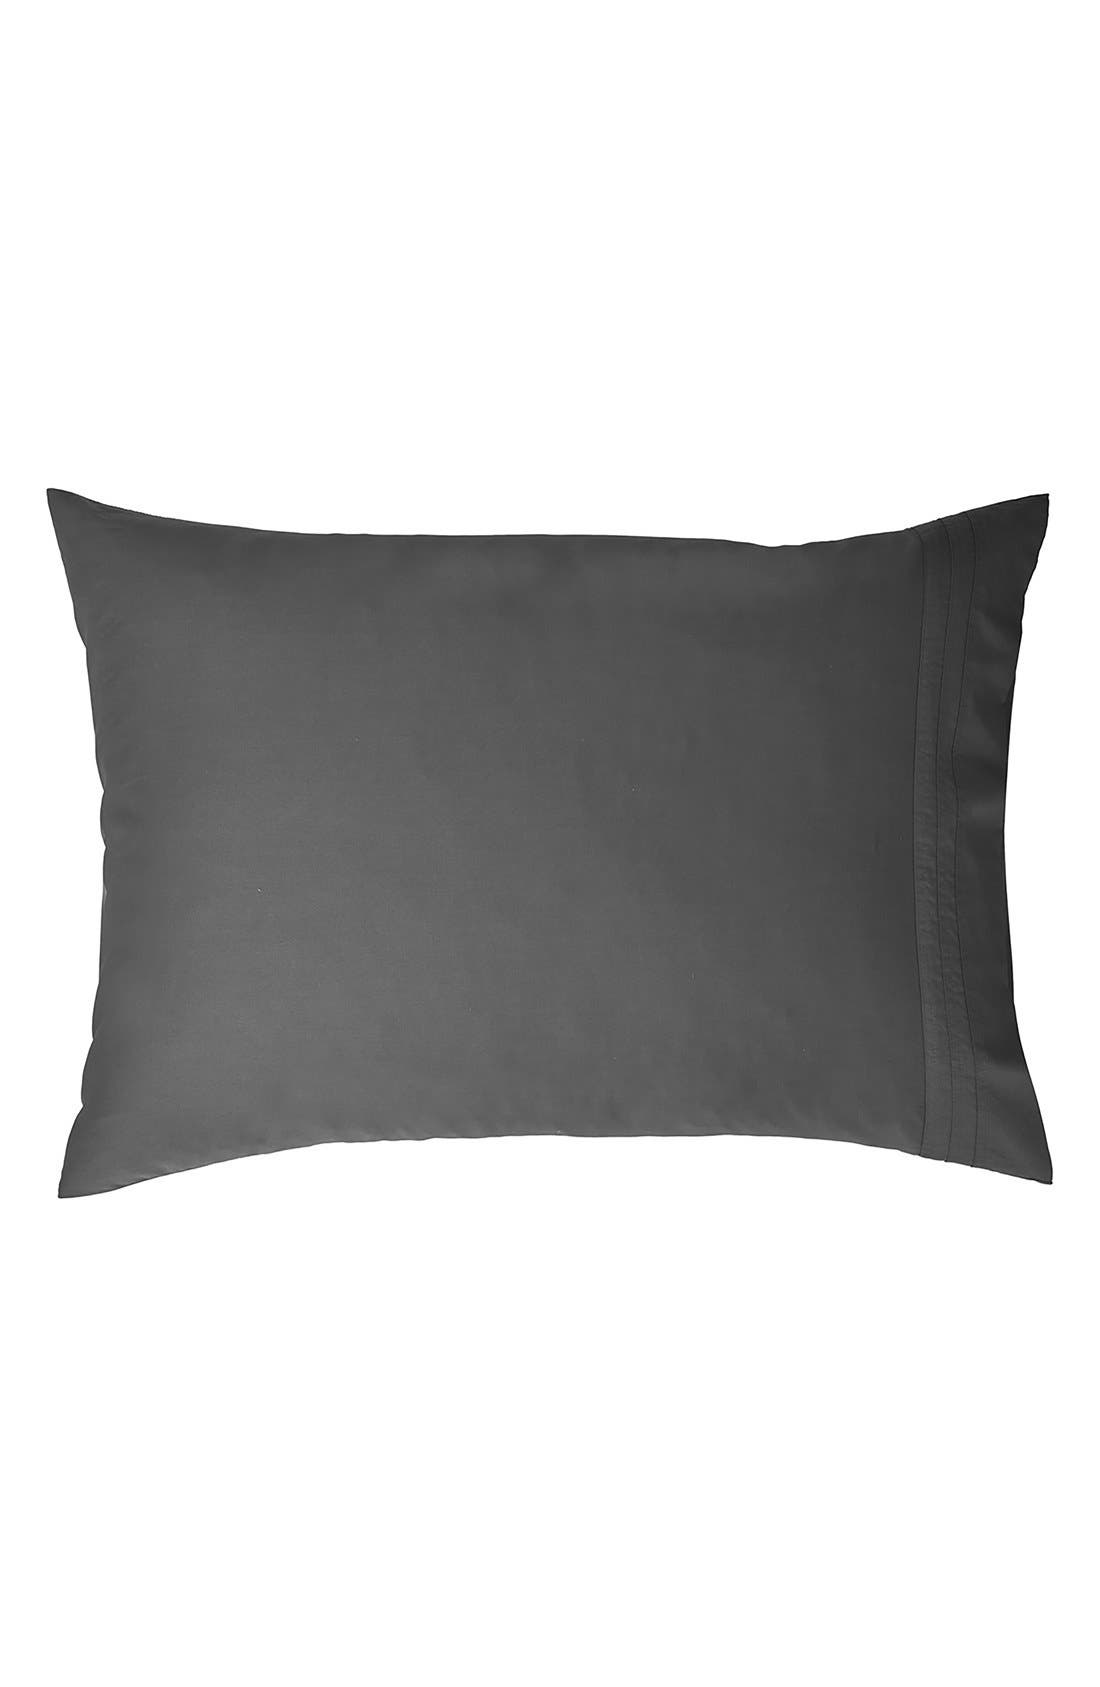 Donna Karan Collection 510 Thread Count Pillowcases,                         Main,                         color, Charcoal Grey